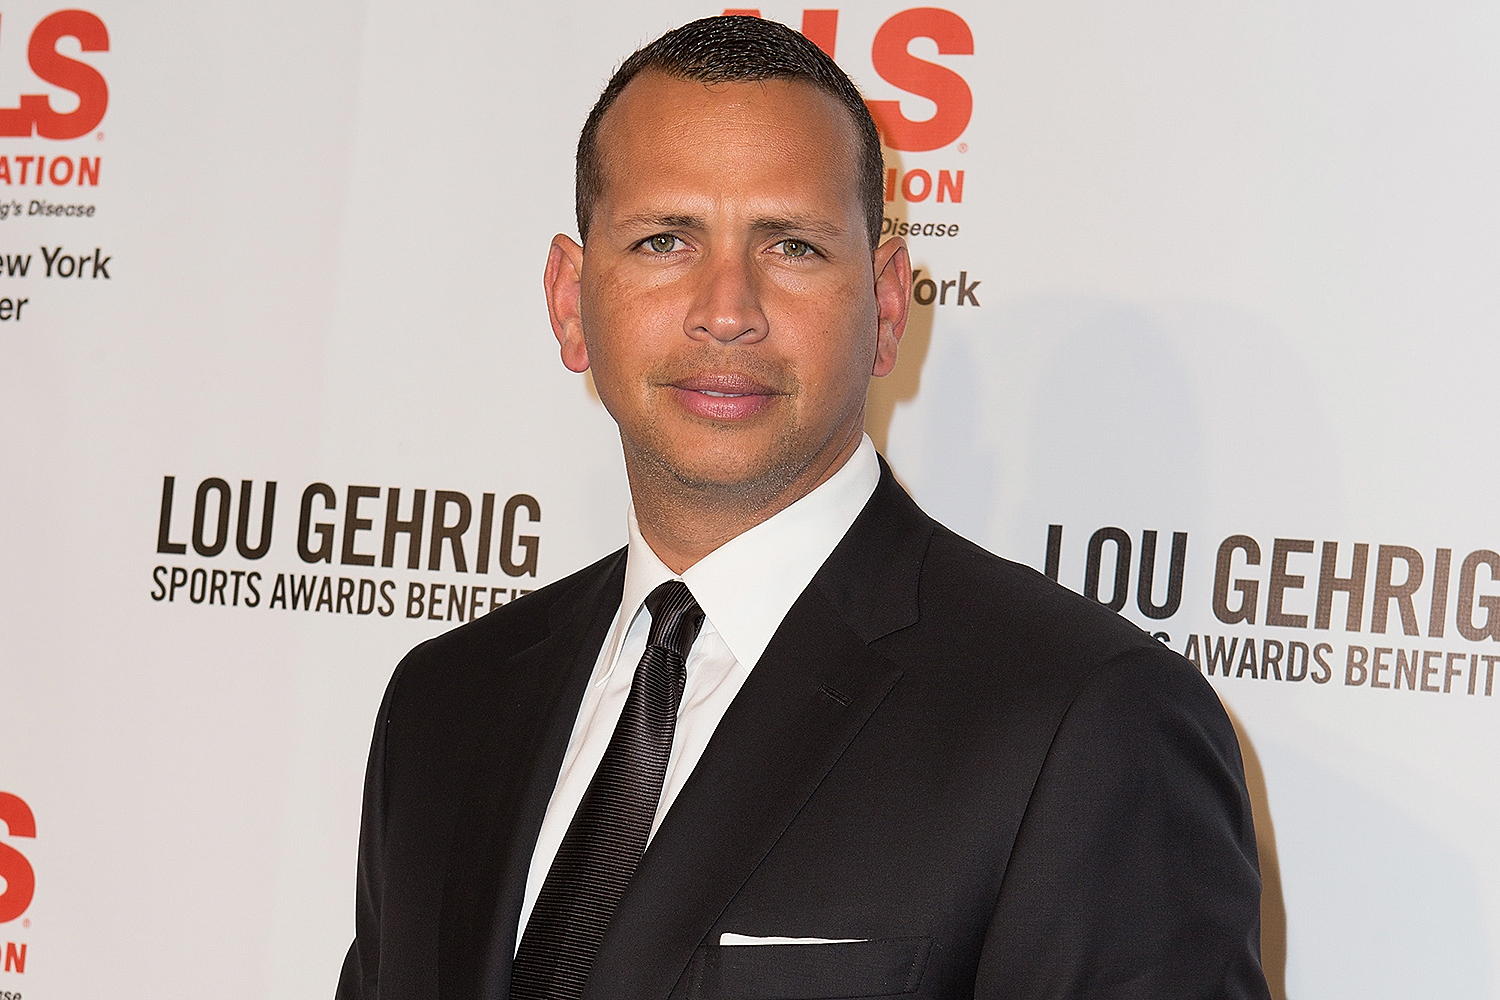 Alex Rodriguez Slams the Astros, Recalls His PED Scandal: 'You Earned Whatever Comes Your Way'